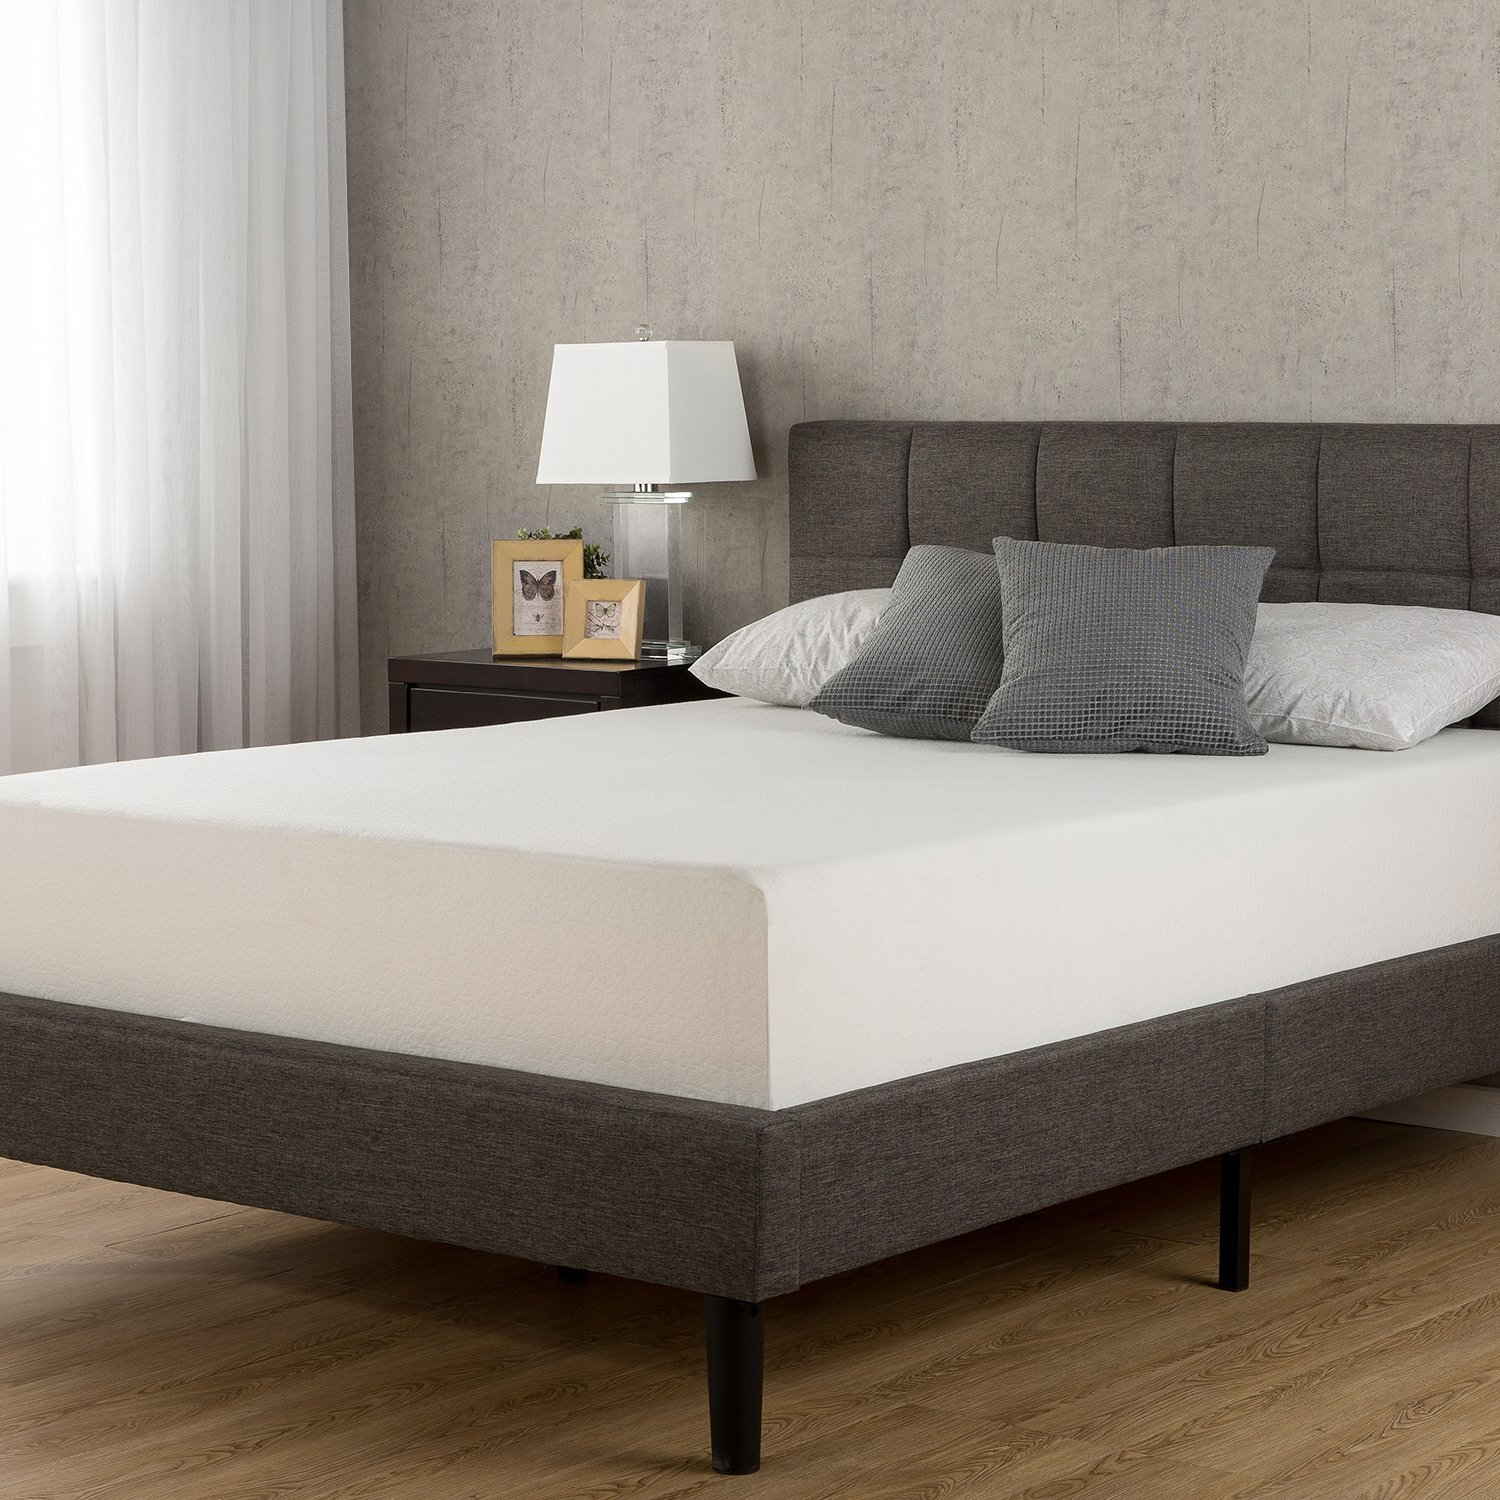 Amazon Zinus Ultima fort Memory Foam 12 Inch Mattress